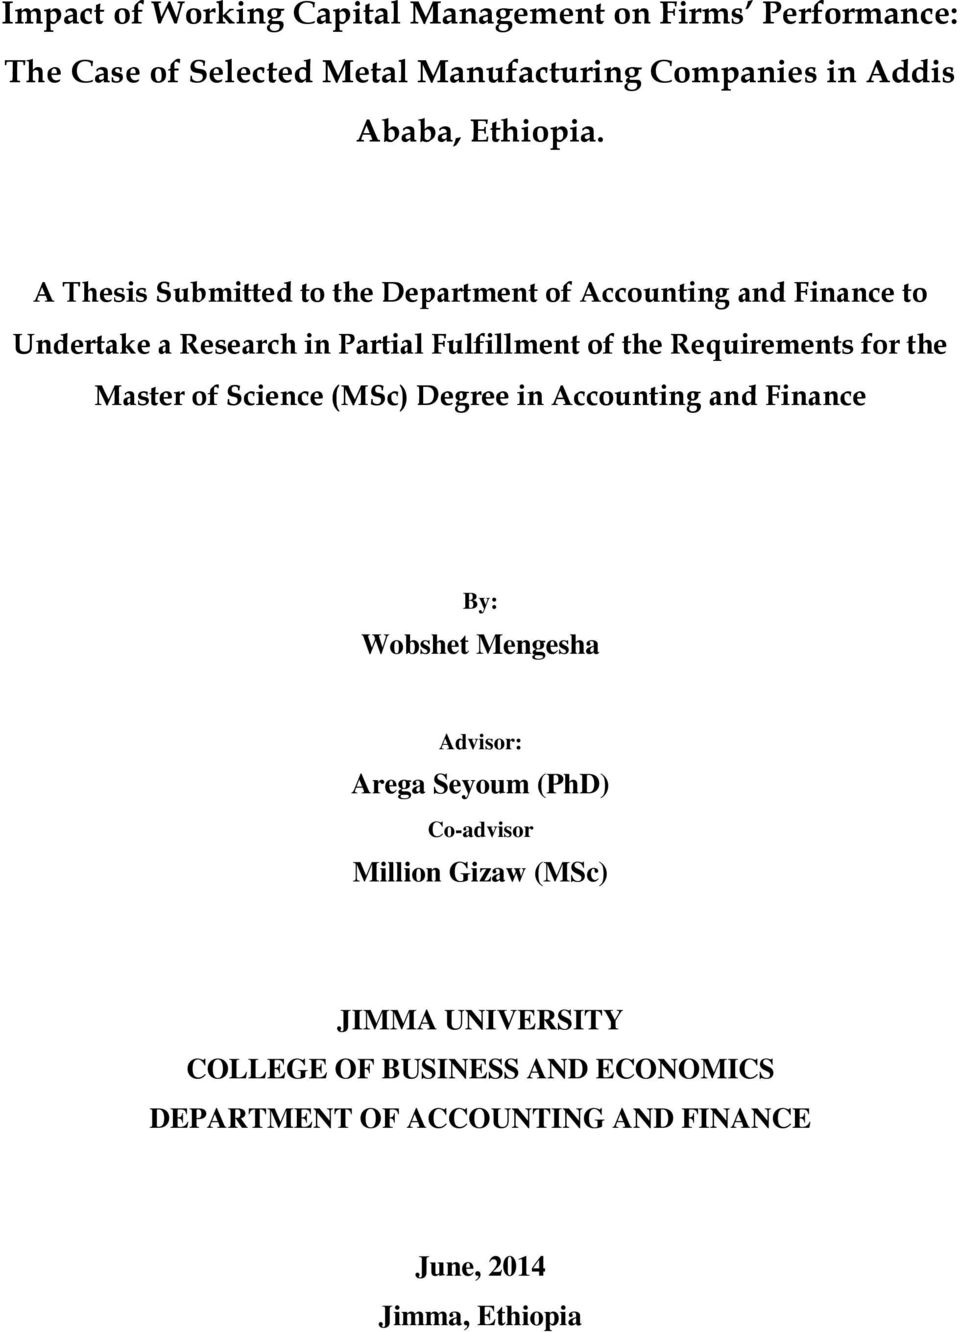 a thesis submitted in partial fulfillment of the requirements for the degree of master of science A thesis submitted to the faculty of graduate studies in partial fulfillment of the requirements for the degree of master of science.